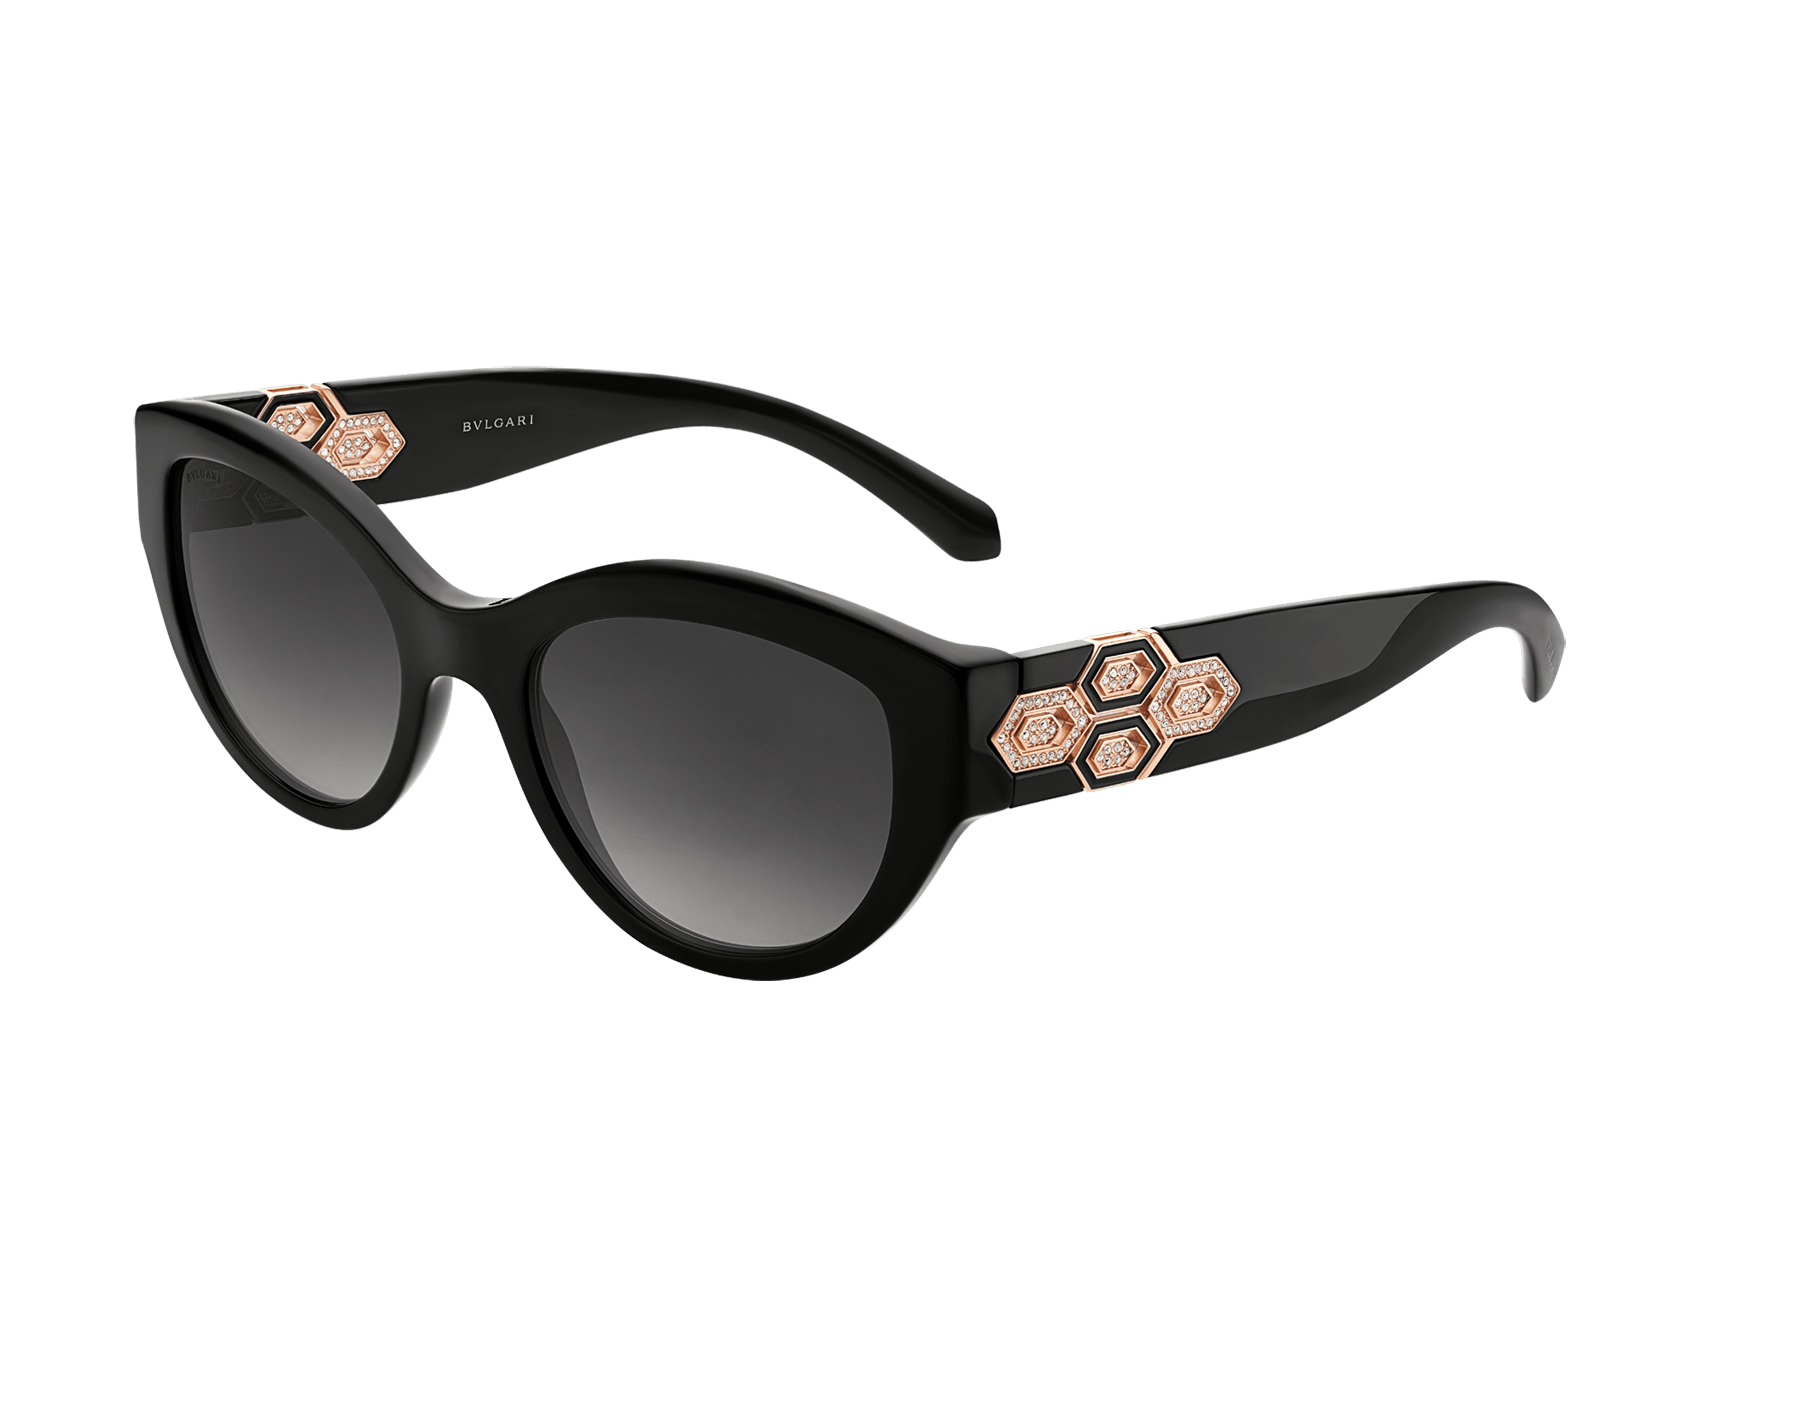 Bvlgari Serpenti cat-eye acetate sunglasses with Serpenti metal décor and crystals. 903844 image 1